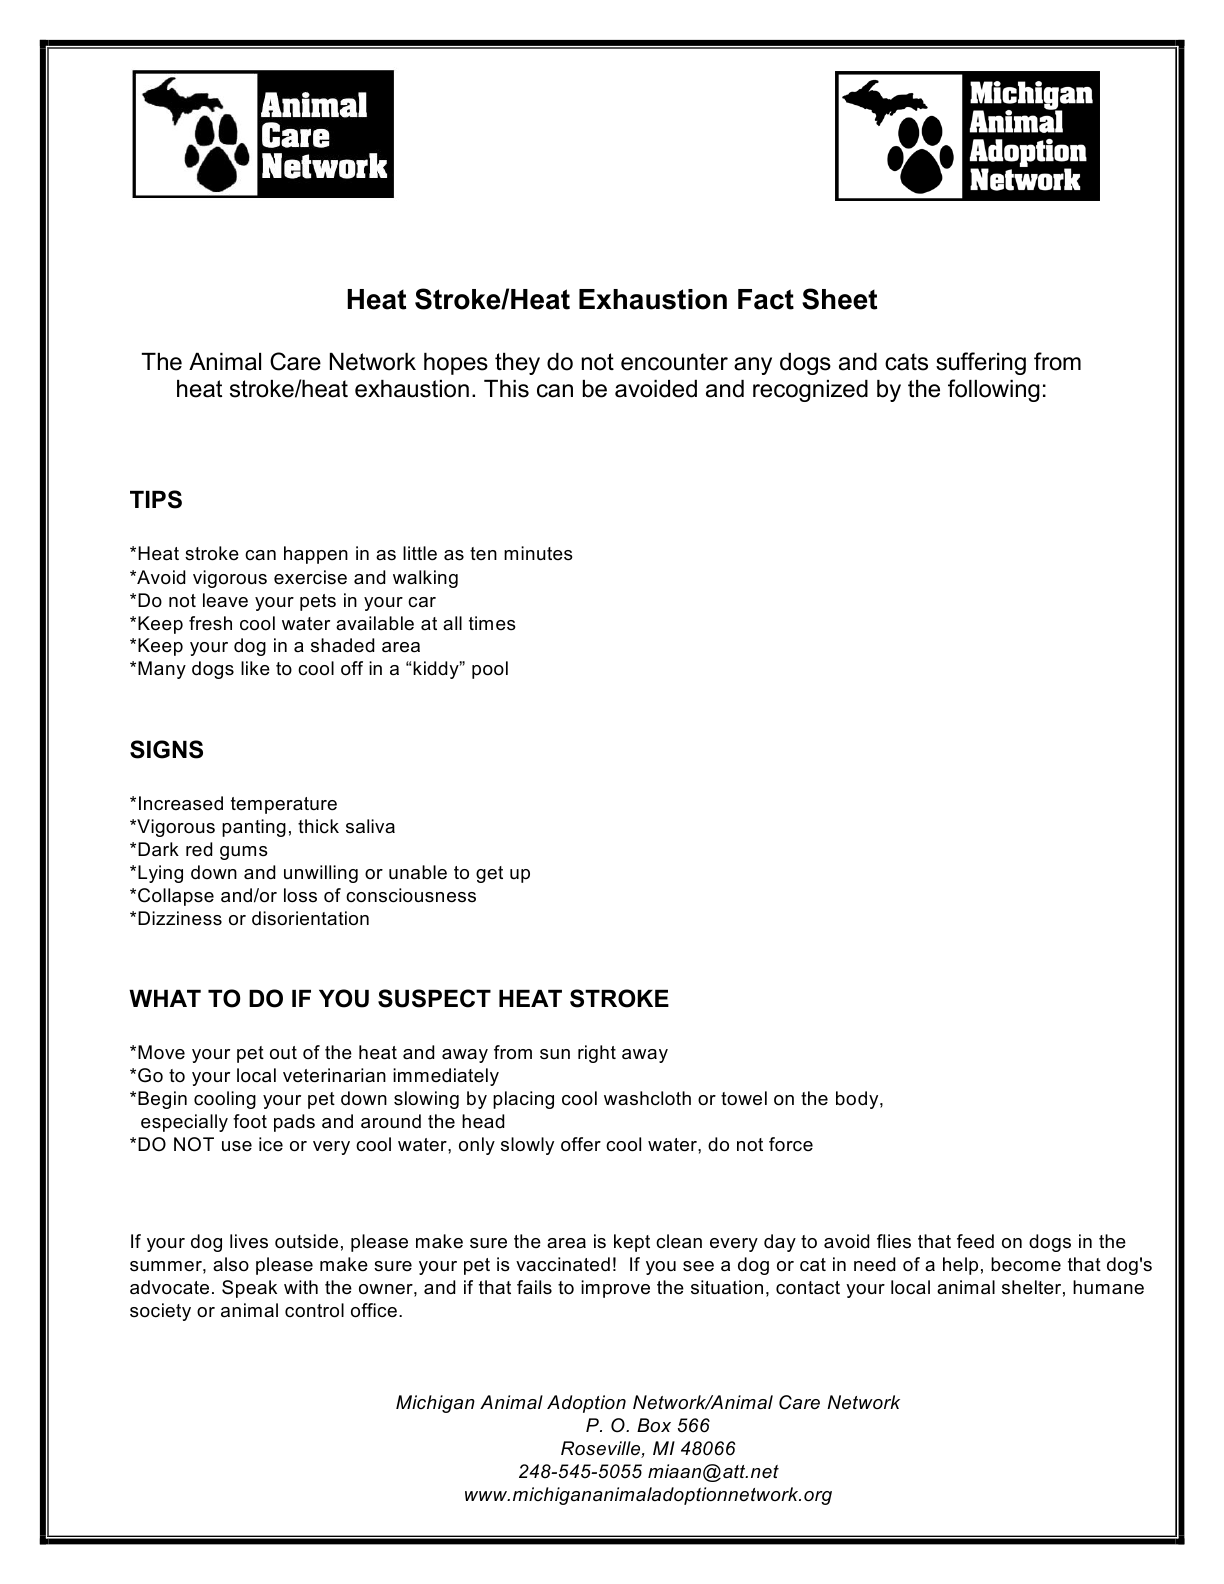 Heat stroke exhaustion fact sheet